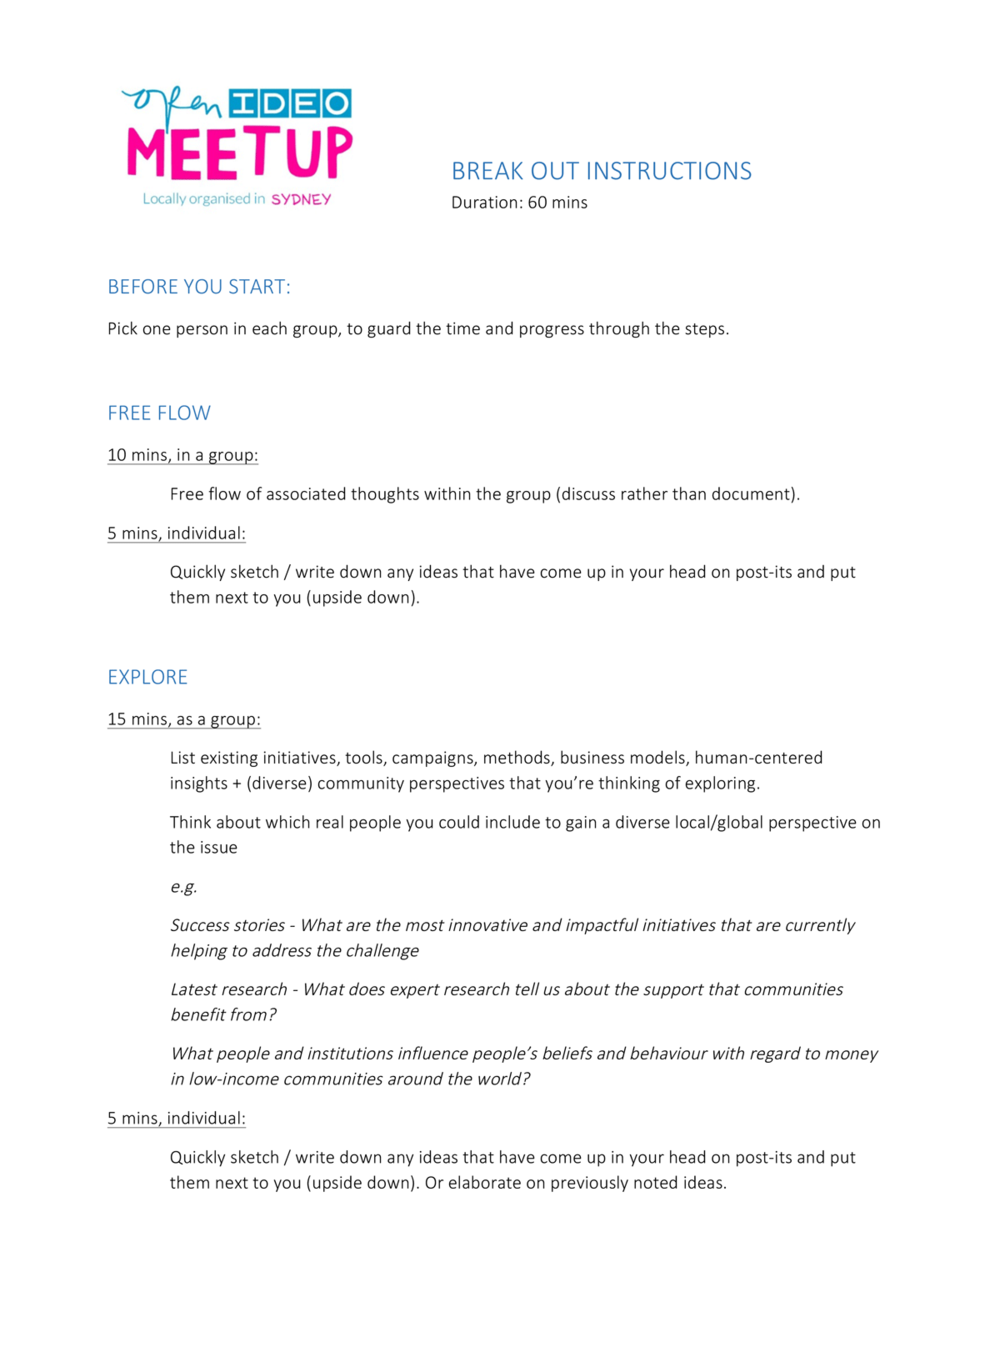 OpenIdeo-Sydney-_financial-empowement_research_breakout-instructions-1.png